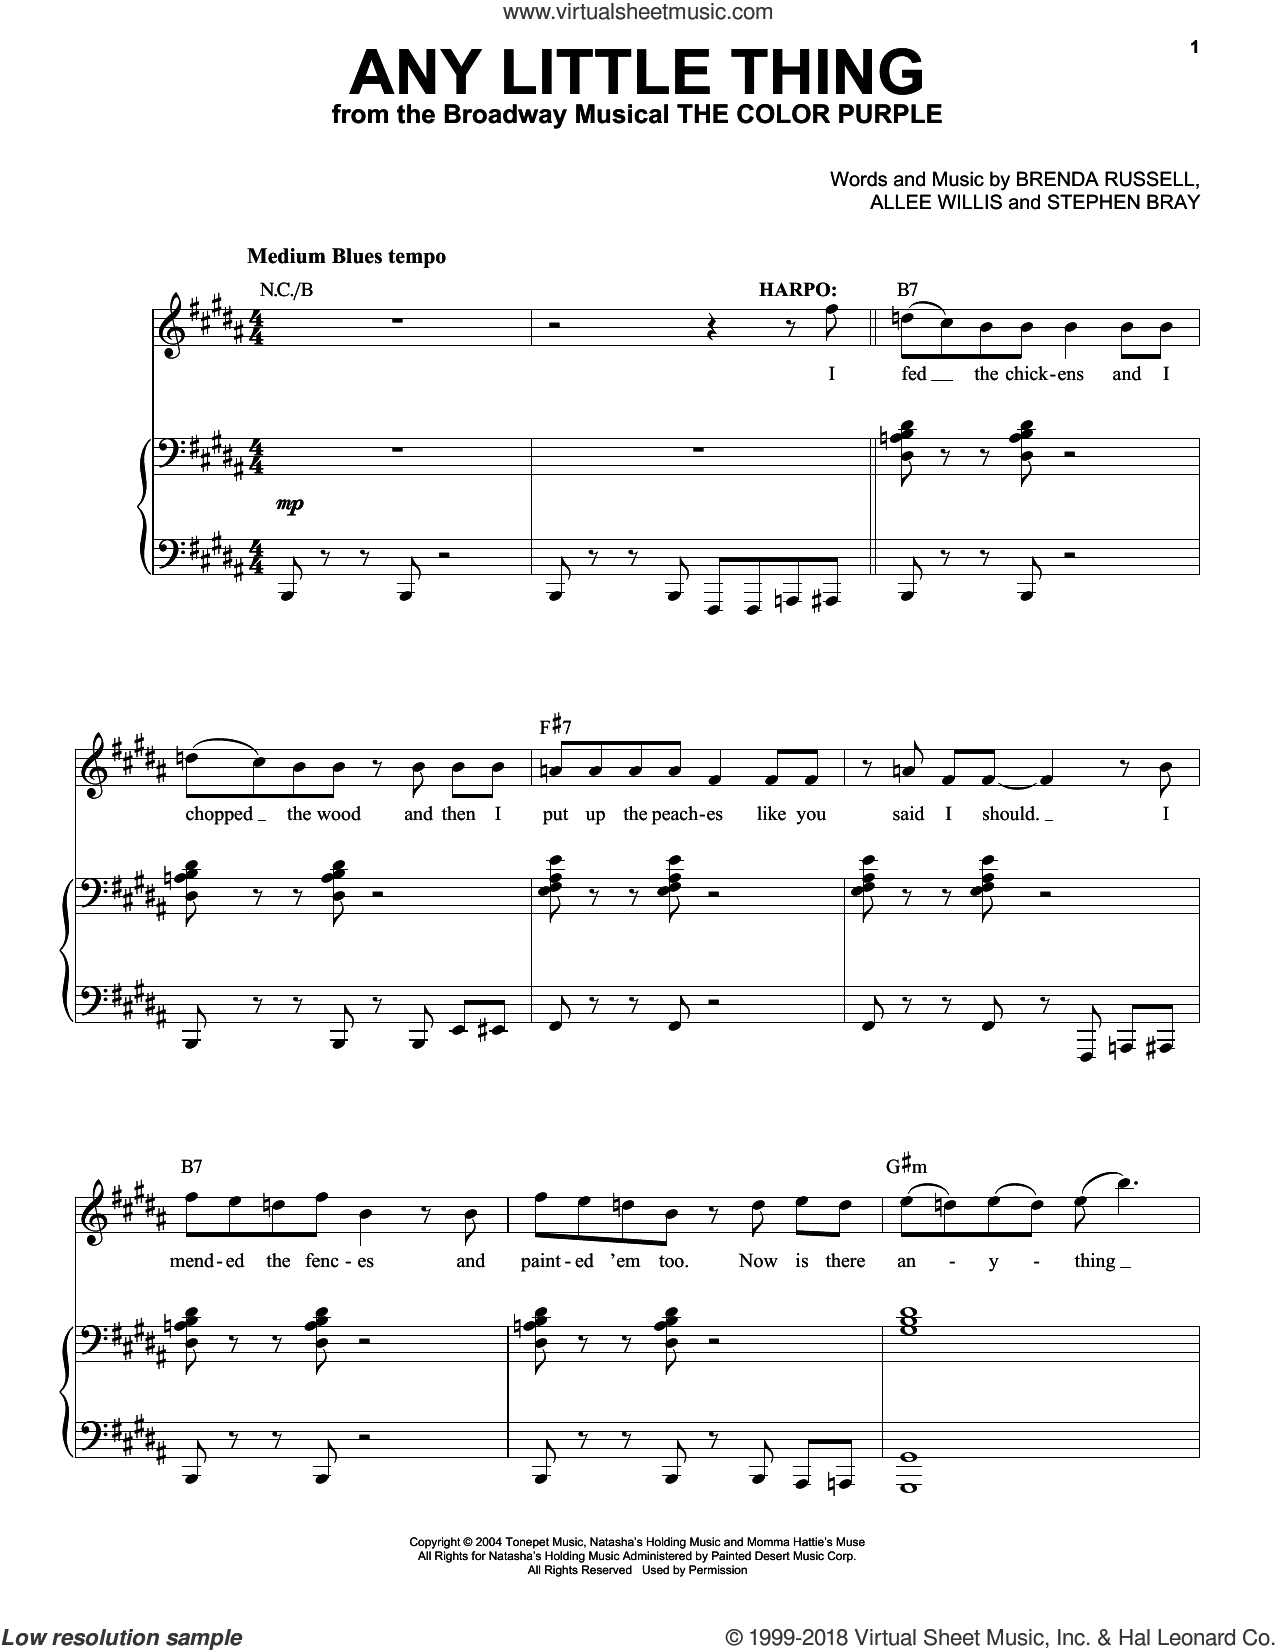 Any Little Thing sheet music for voice and piano by Stephen Bray